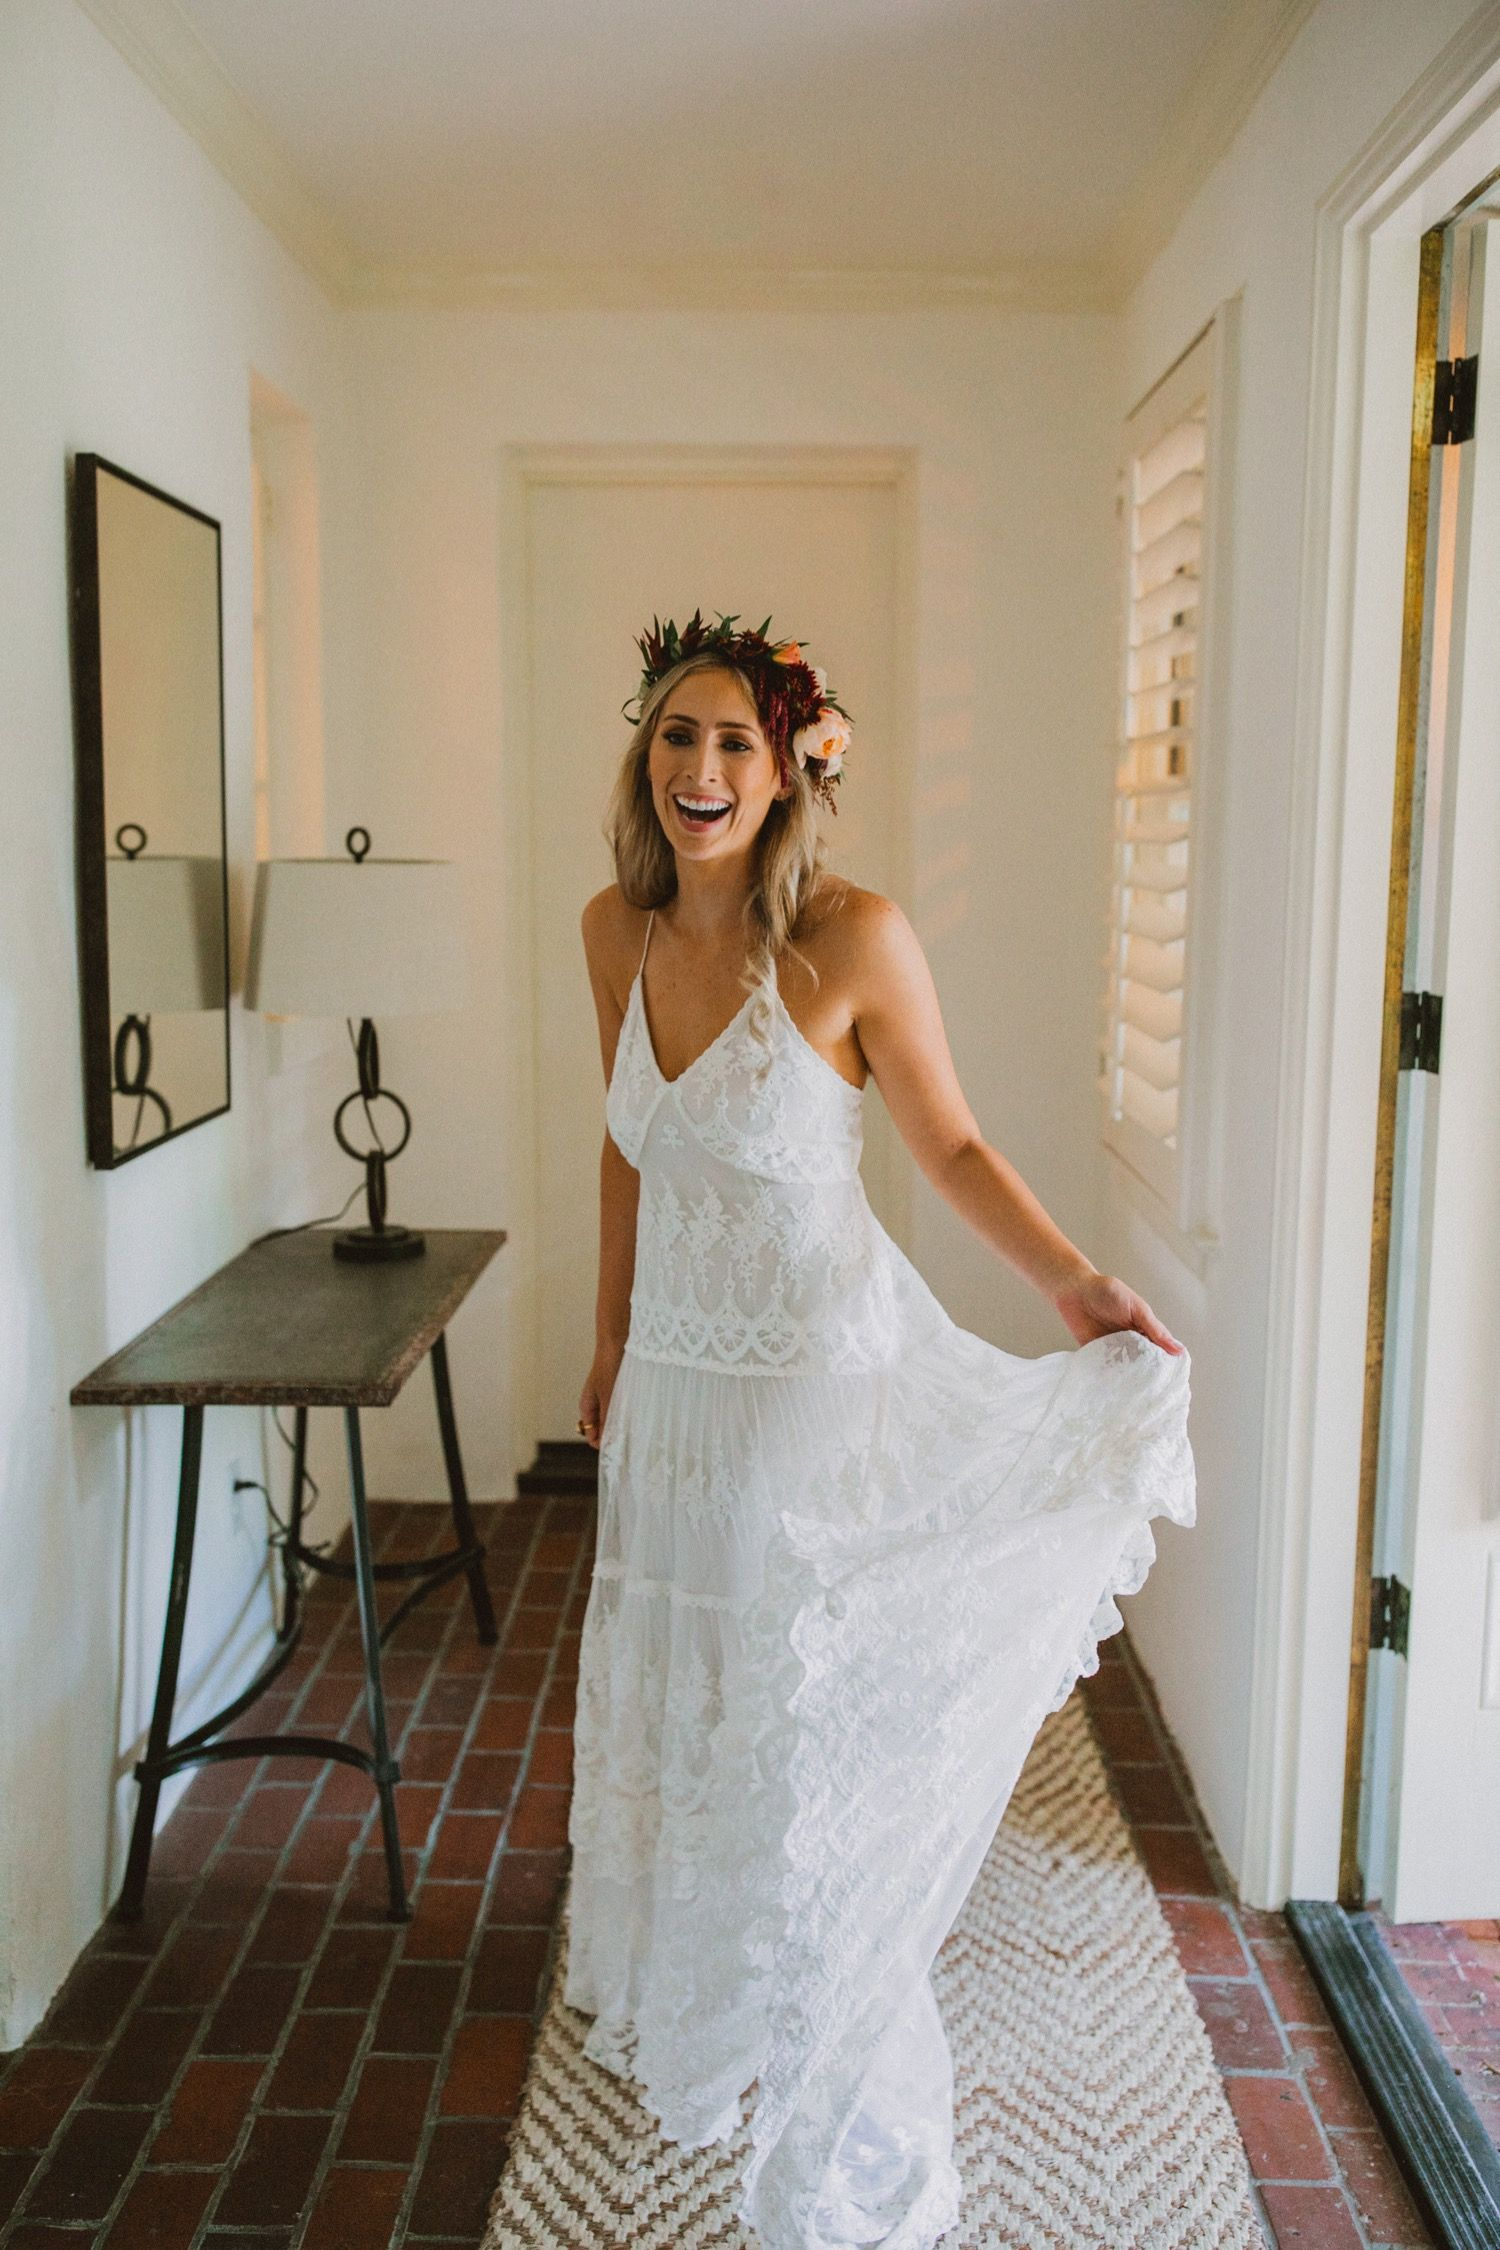 Fun Spinning Pic Of Bride Before Wedding At The Acre Orlando Boho Garden Pretty Wedding Dresses Mermaid Style Wedding Dress Glam Bride